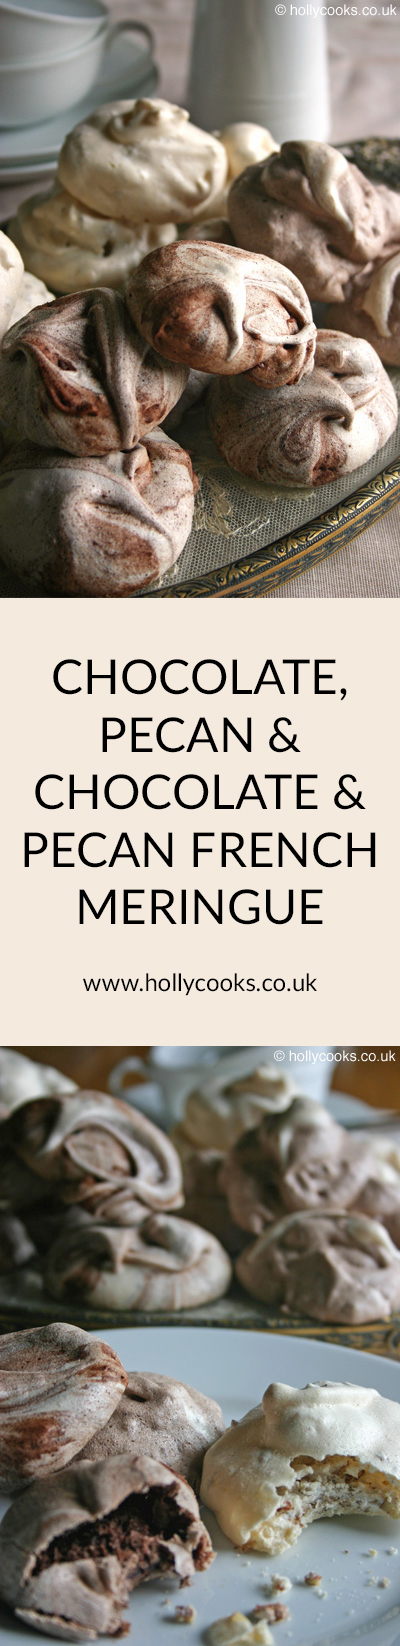 Chocolate-pecan-and-chocolate-and-pecan-french-meringe-pinterest